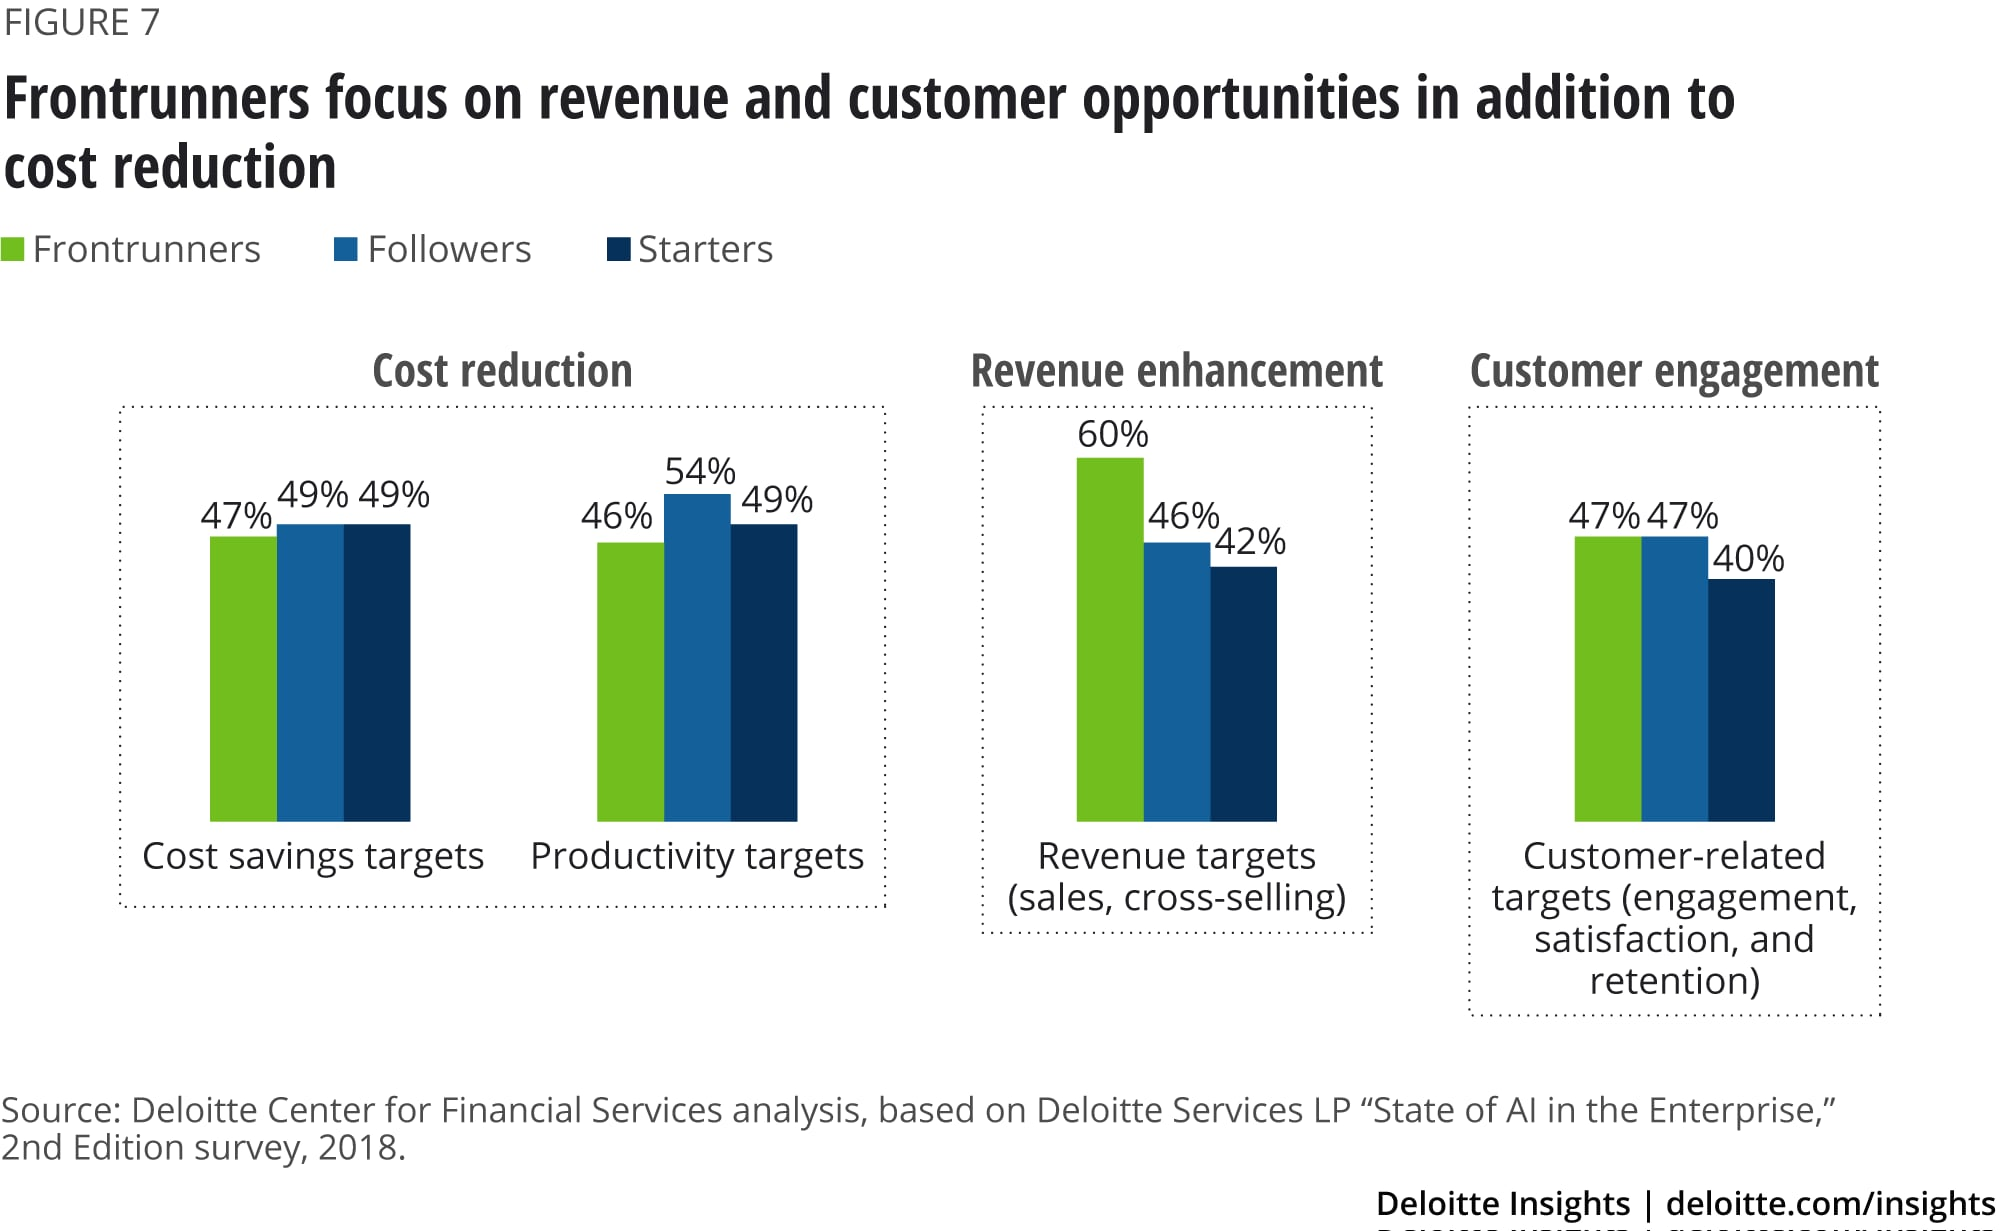 Frontrunners focus on revenue and customer opportunities, in addition to cost reduction